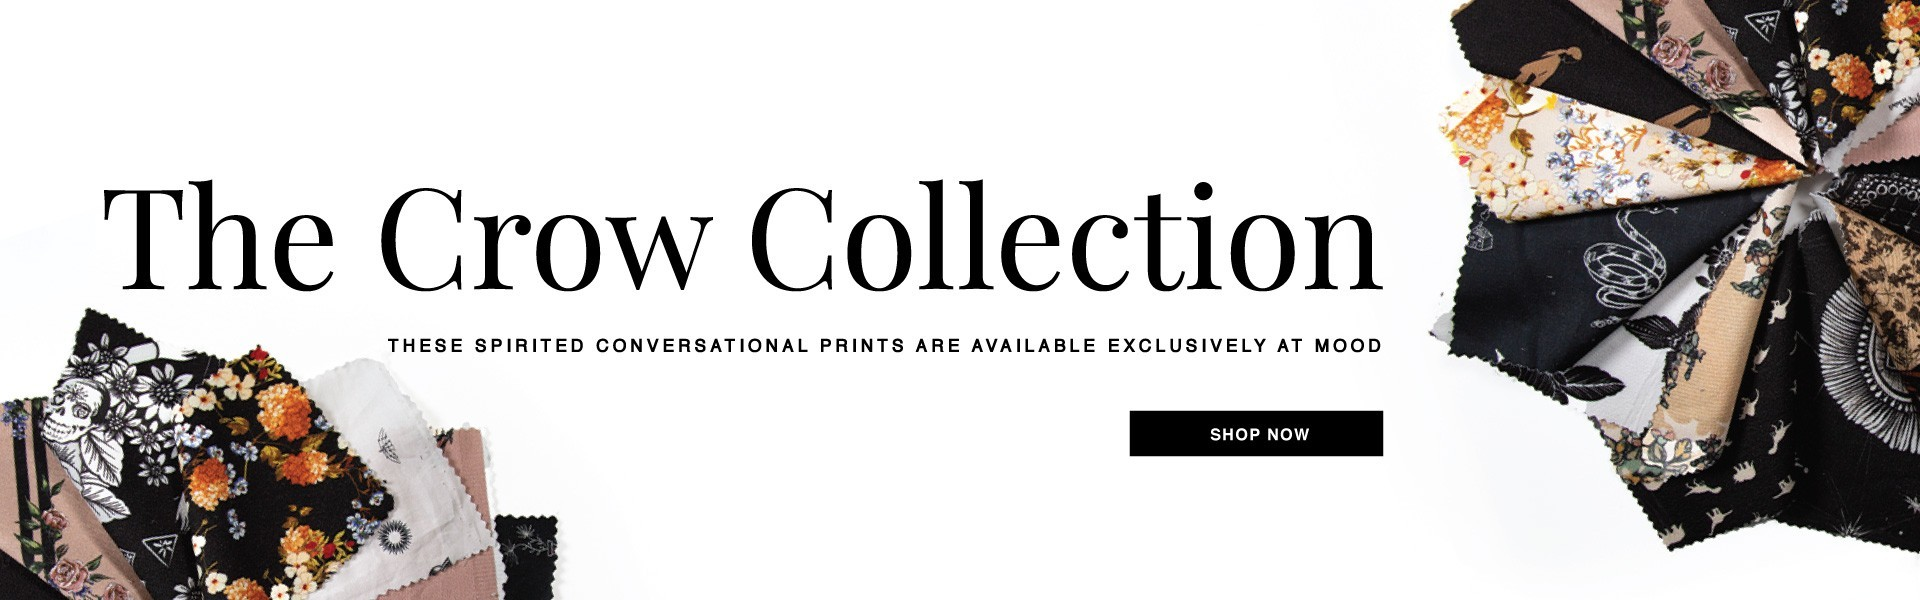 The Mood Exclusive Crow Collection - Shop now!